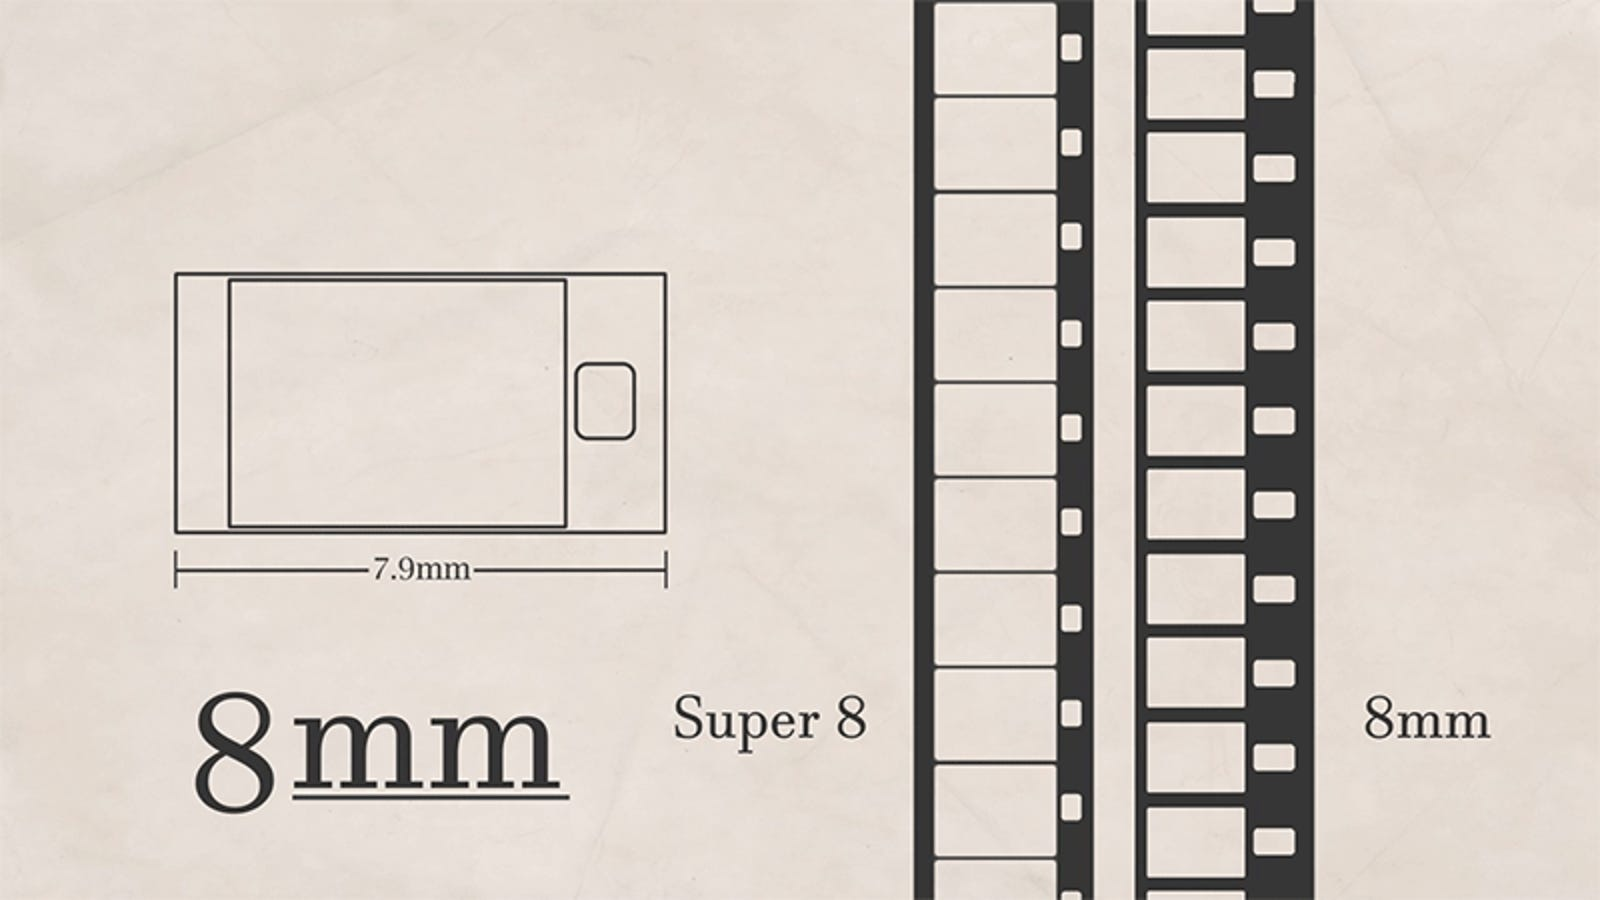 So How Does Analog Film Work Anyway?